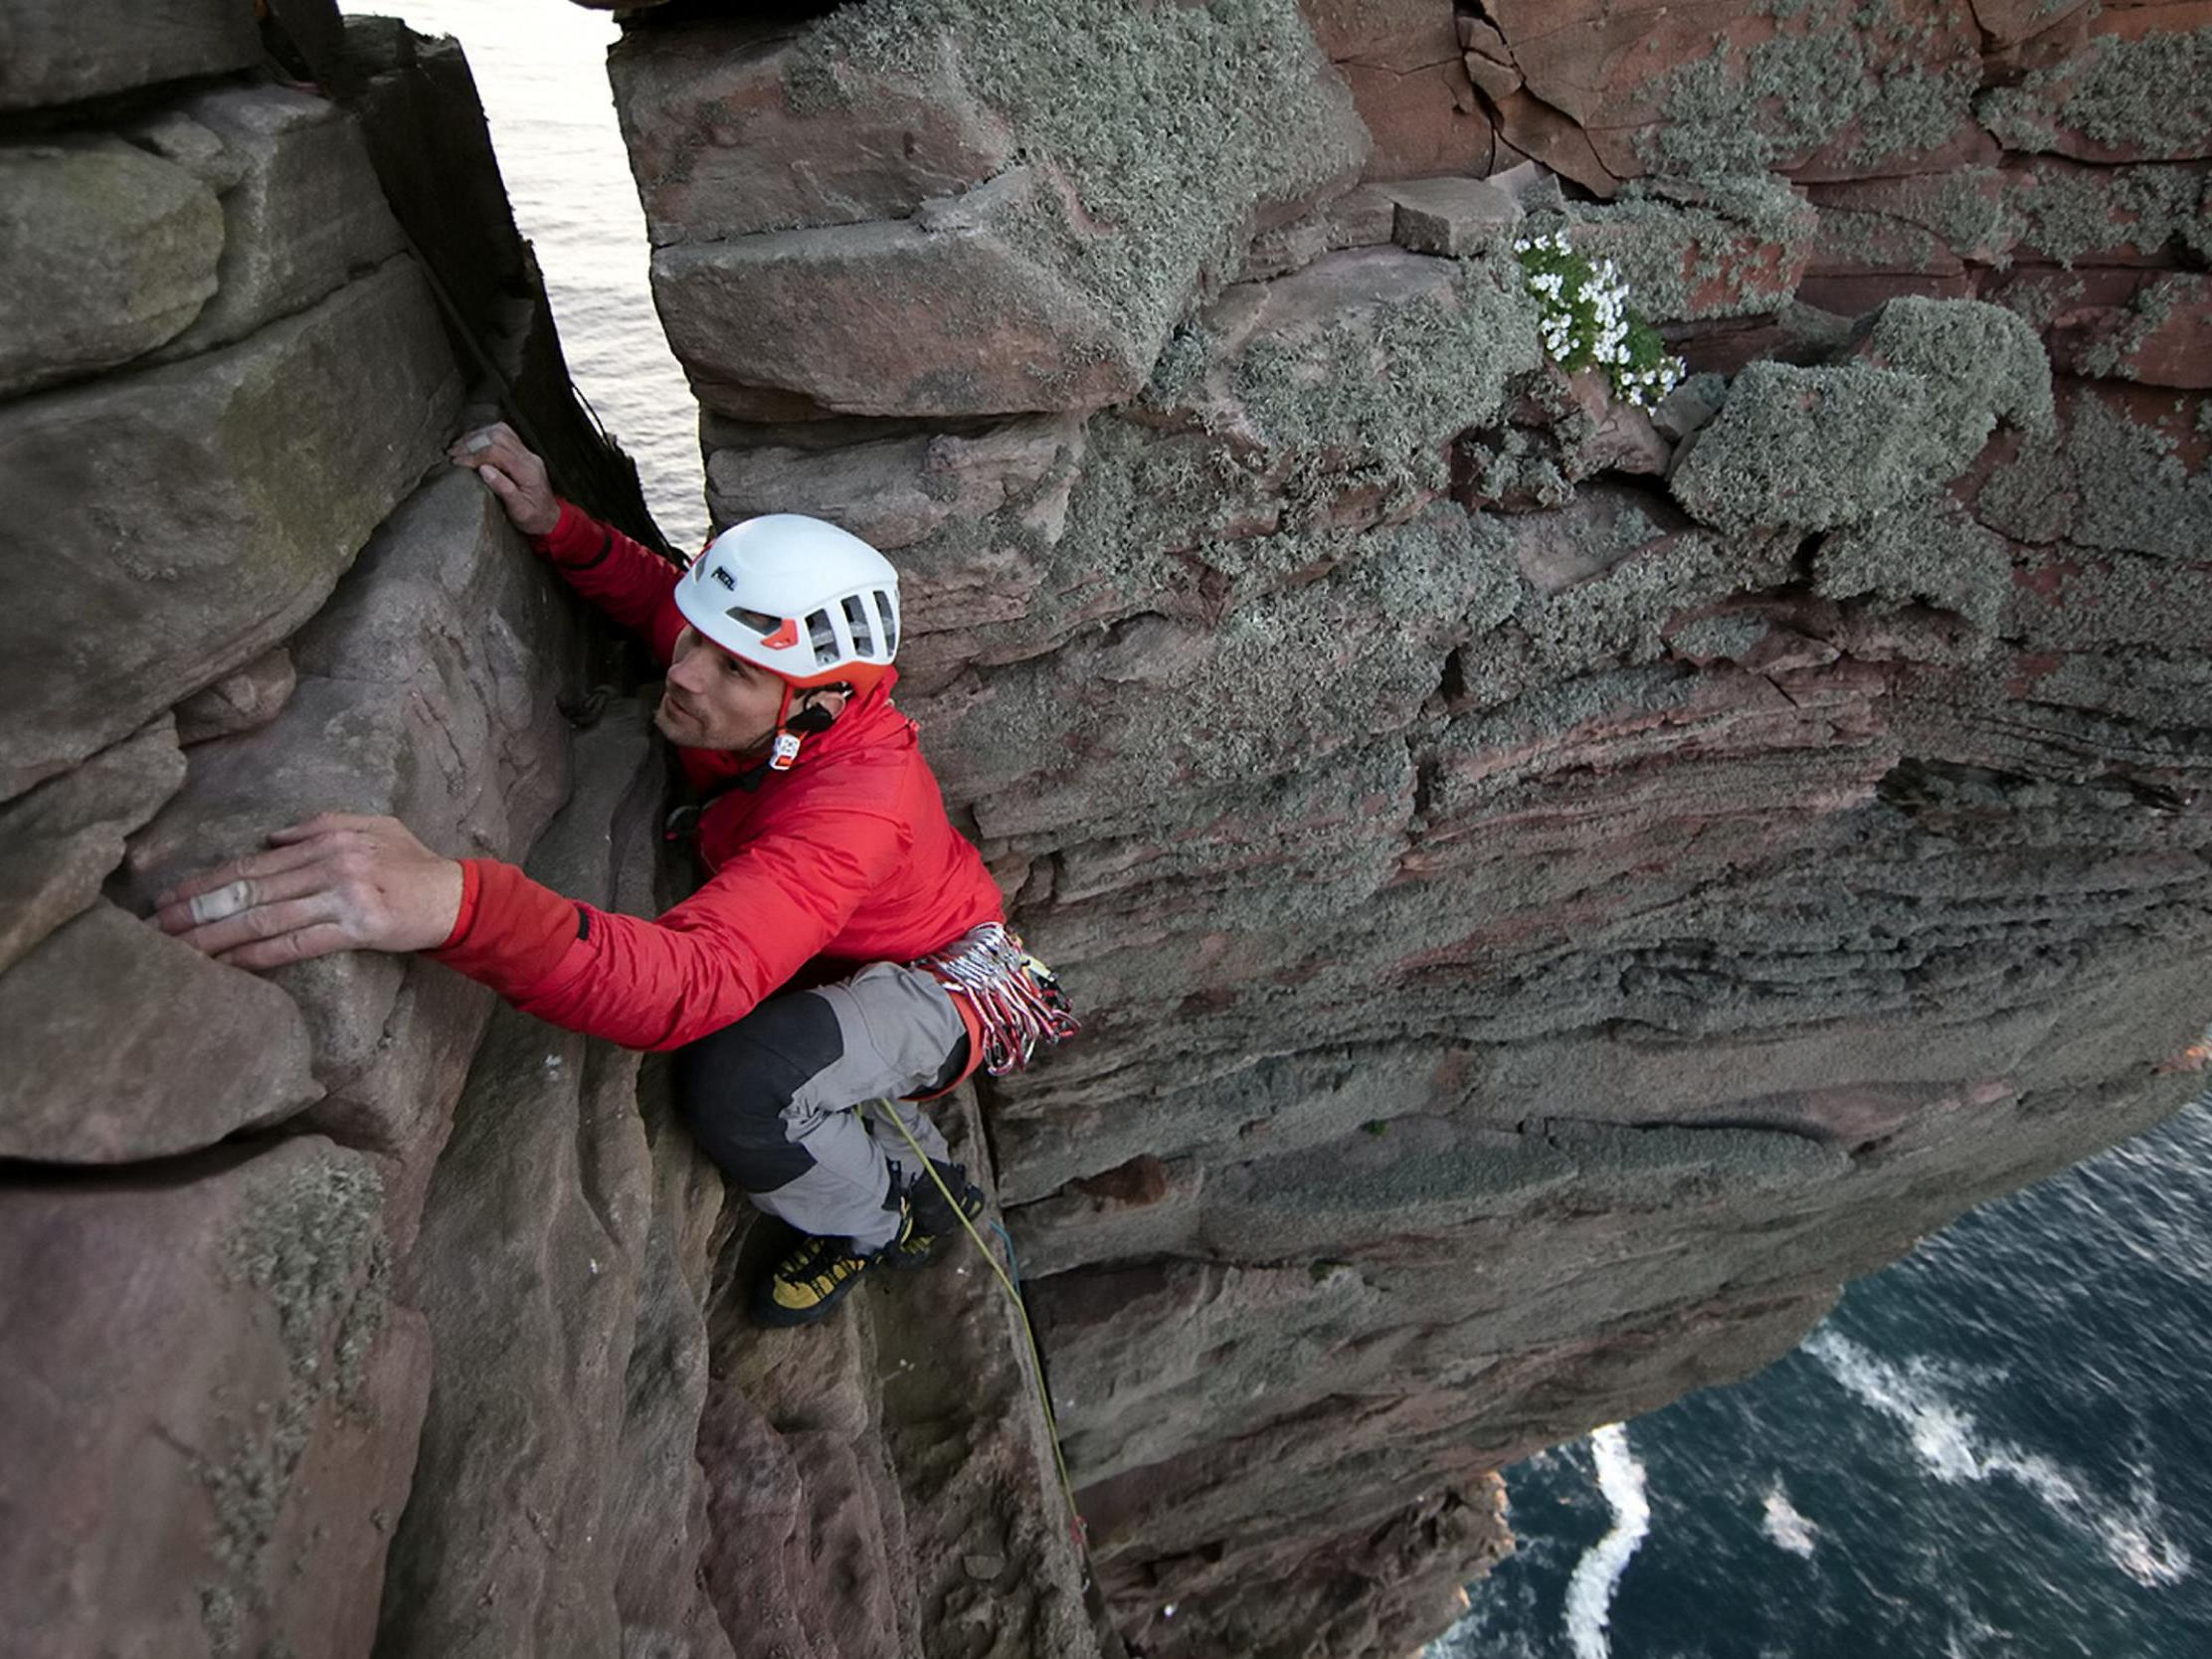 Climbing - latest news, breaking stories and comment - The